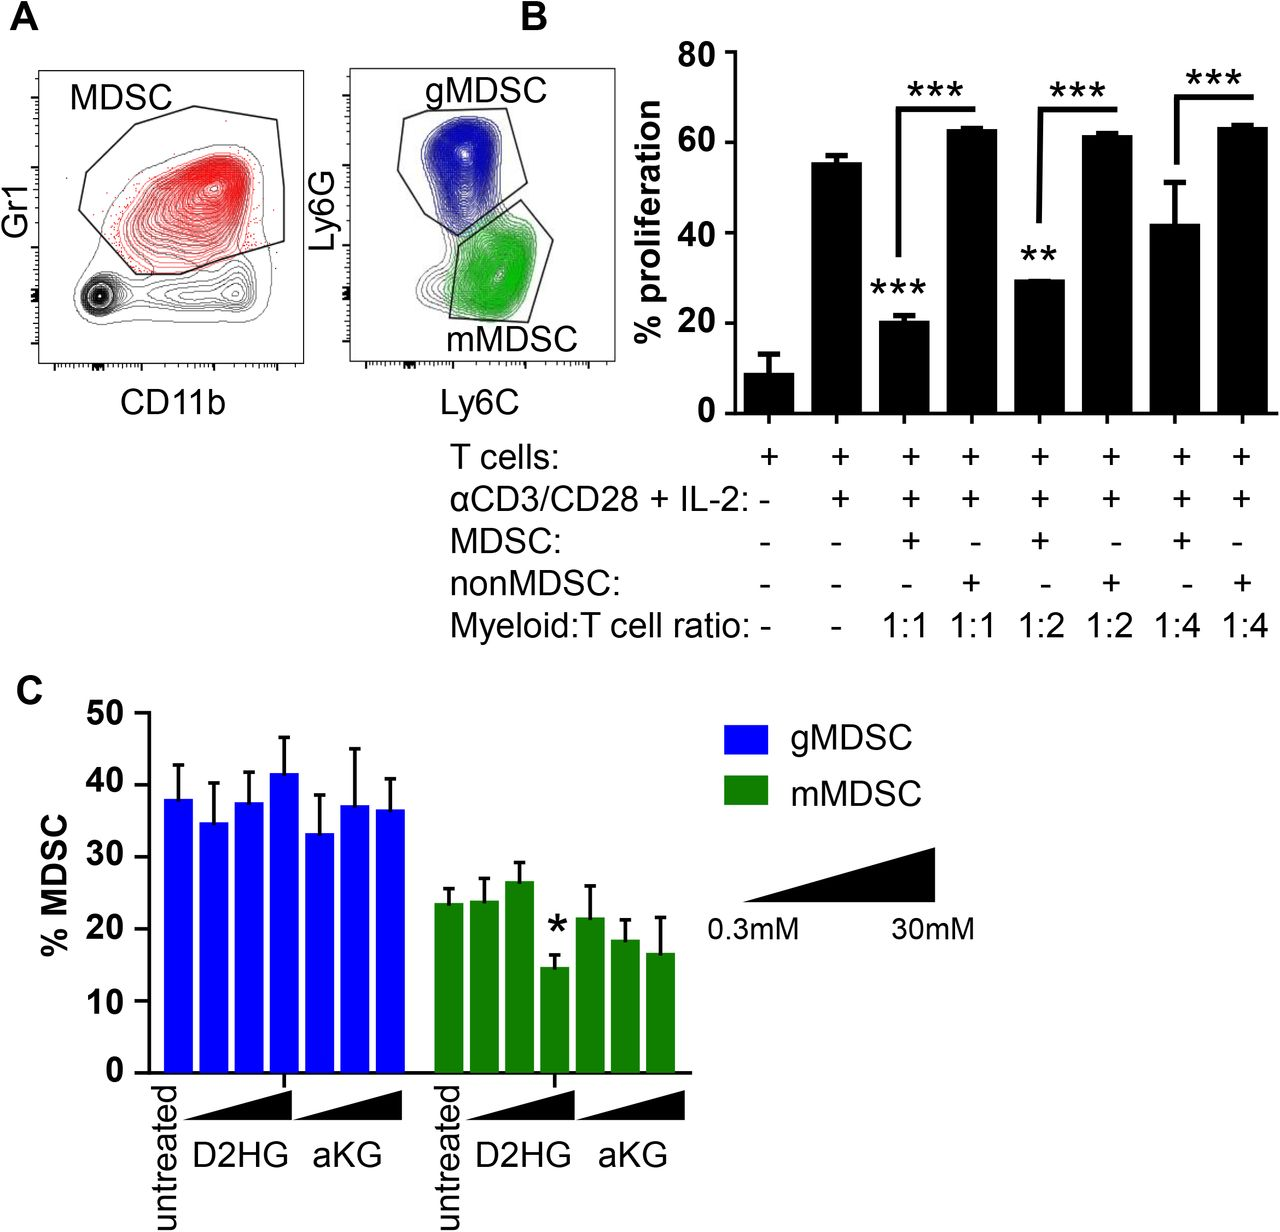 D2HG blocks mMDSC polarization in vitro. A) Representative flow plots demonstrating the gating strategy for in vitro generated mMDSCs and gMDSCs. B) Proliferation rate of T cells co-cultured with increasing concentrations of MDSCs or nonMDSCs. ** p